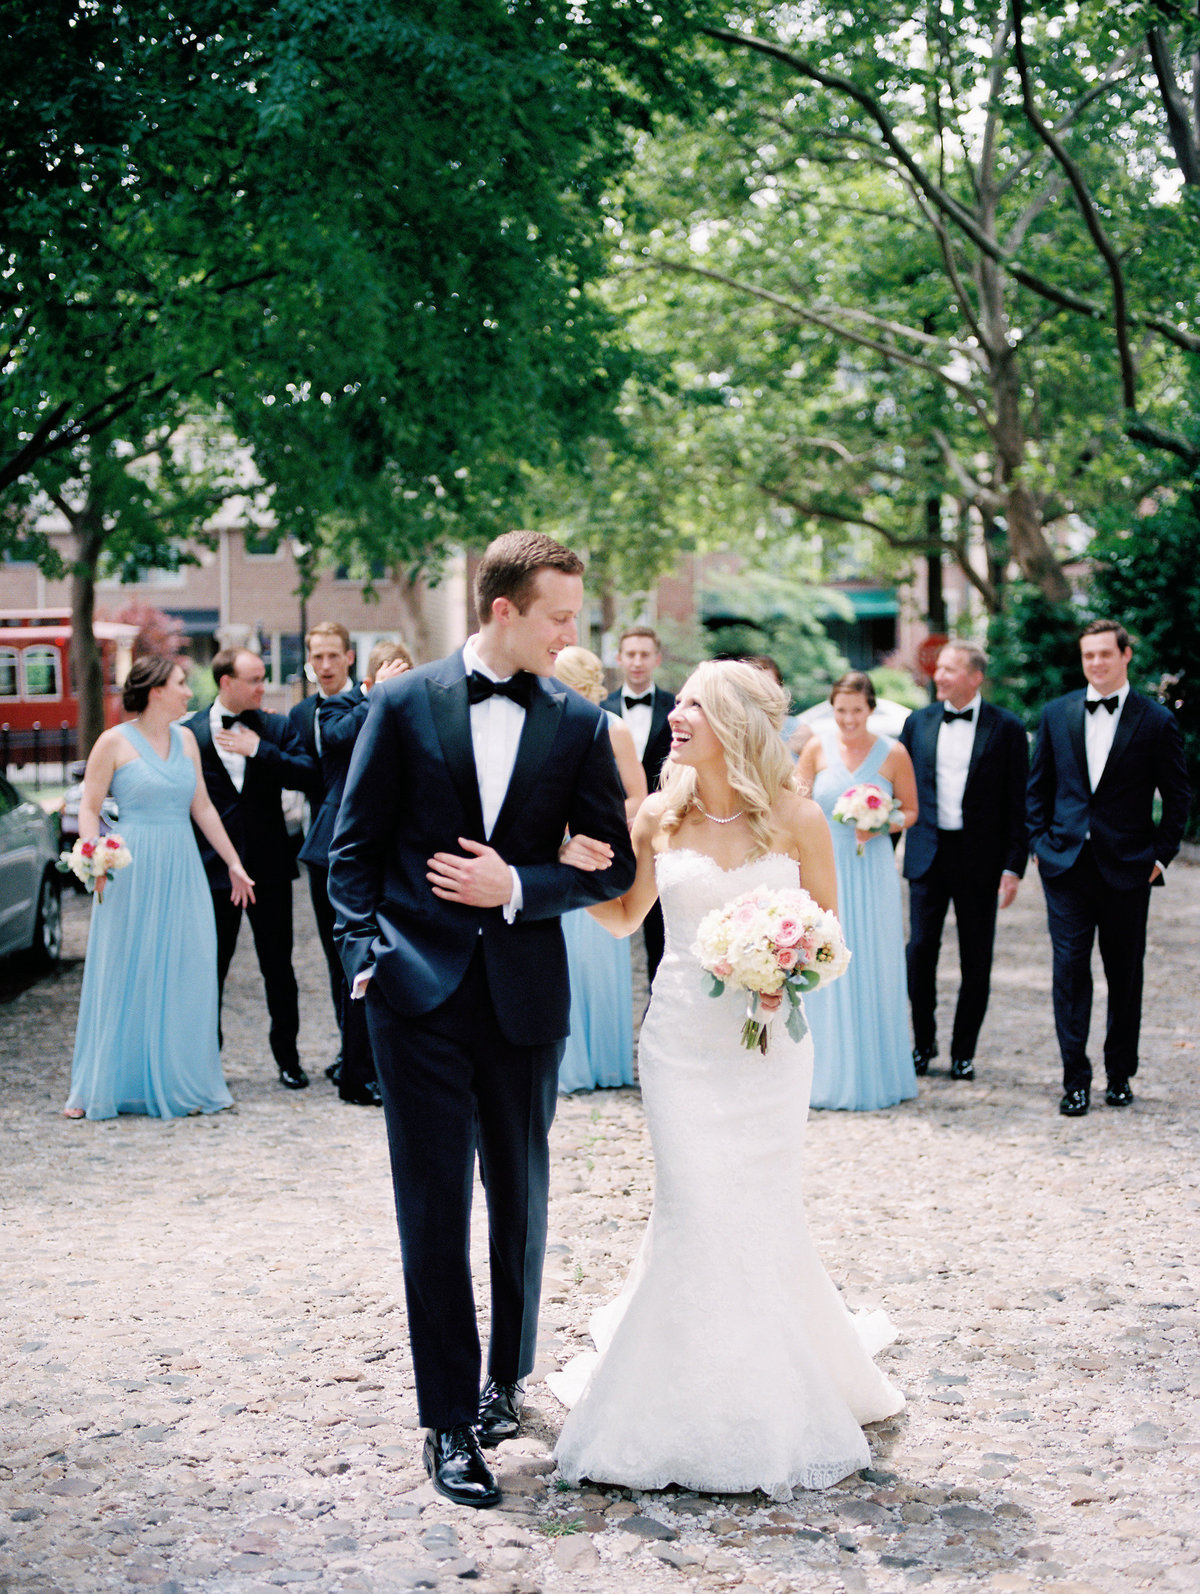 Wedding - Caitlin Sullivan - Indianapolis, Indiana Photographer - Photo - 6